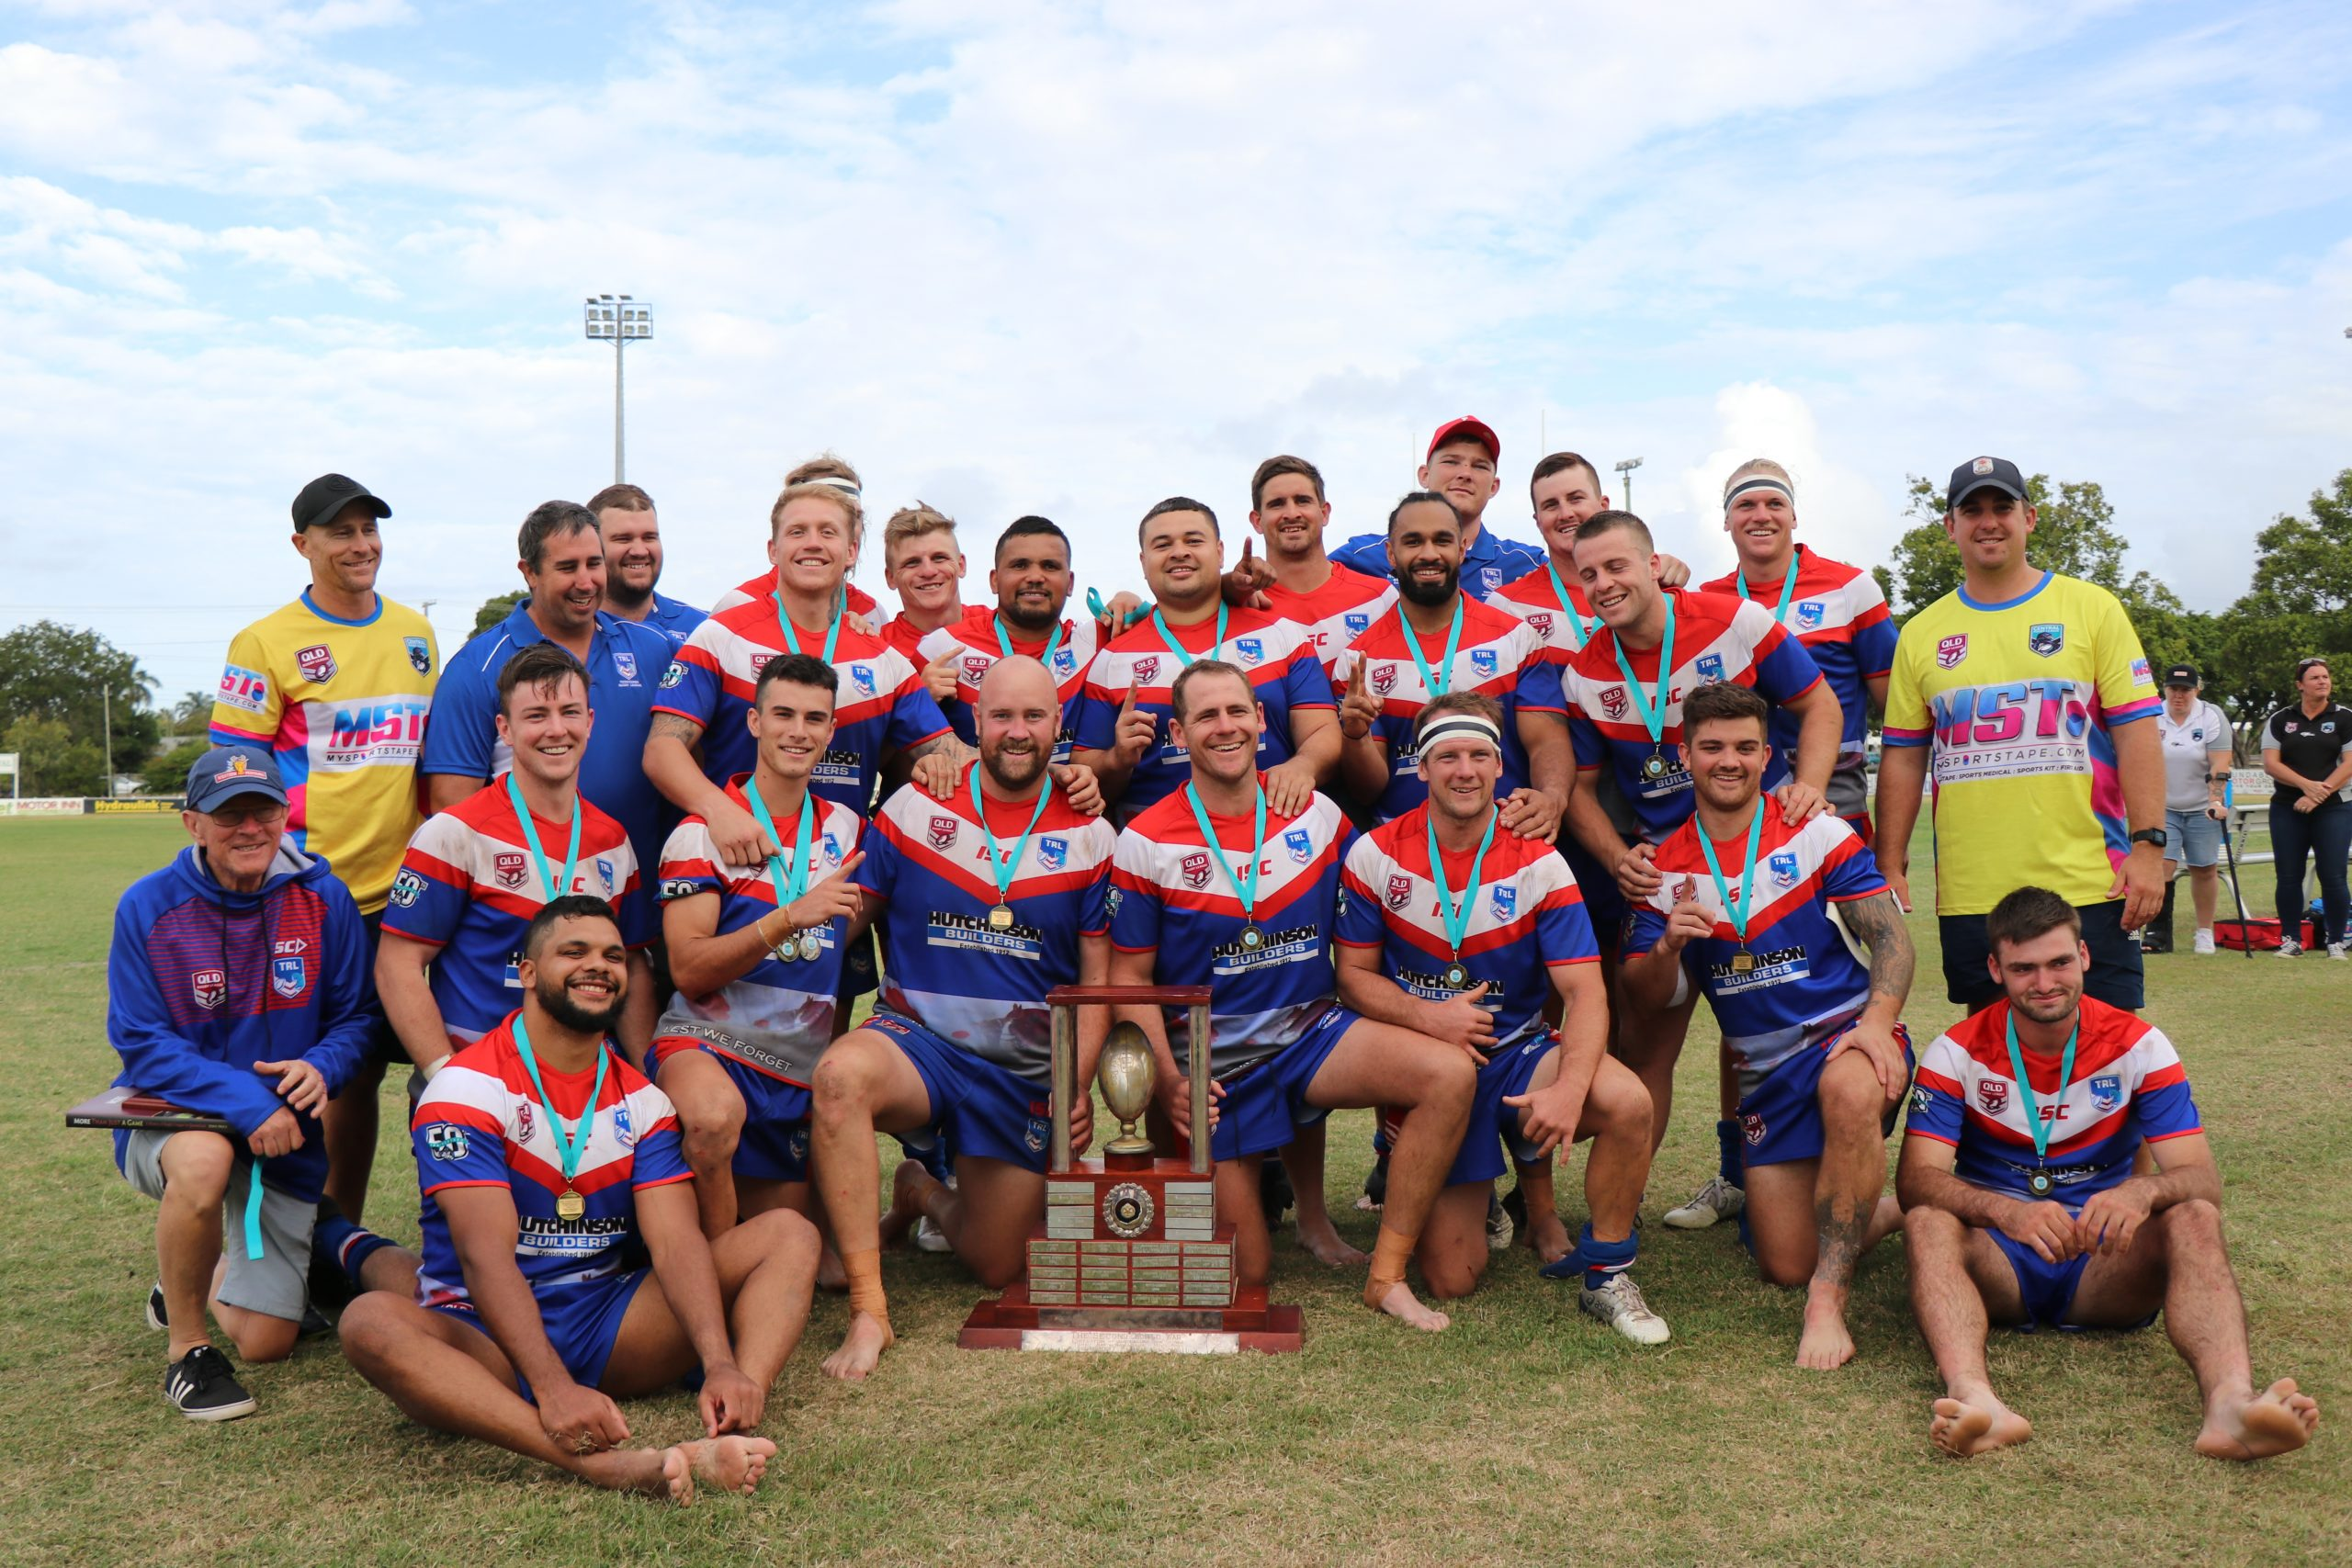 Toowoomba and Mackay to face off in XXXX State League Championship Semi-Final